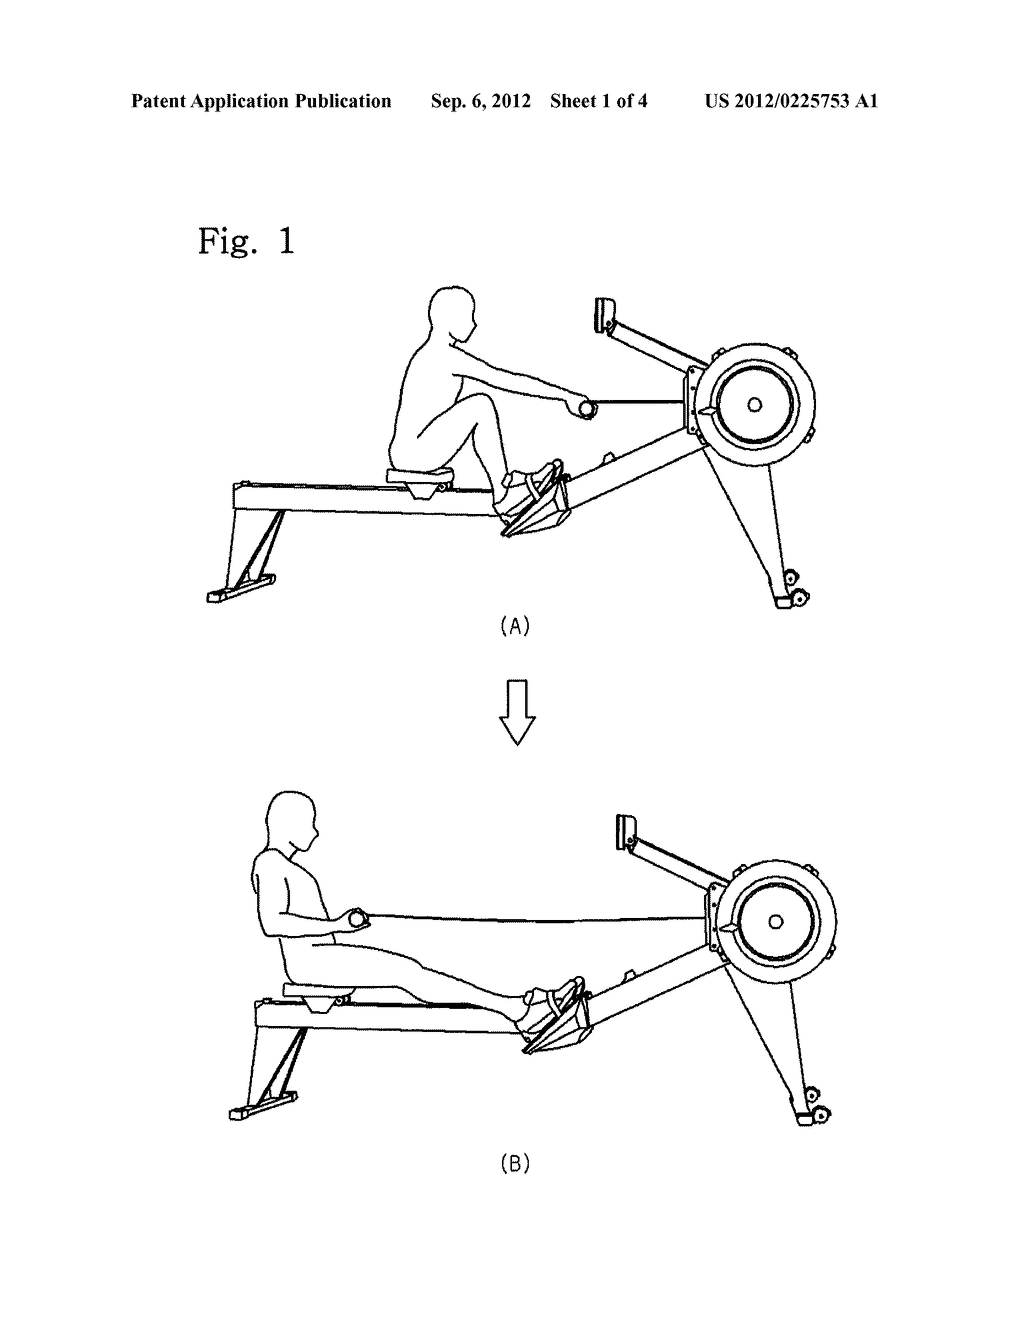 hight resolution of rowing machine exercise assisting device diagram schematic and image 02